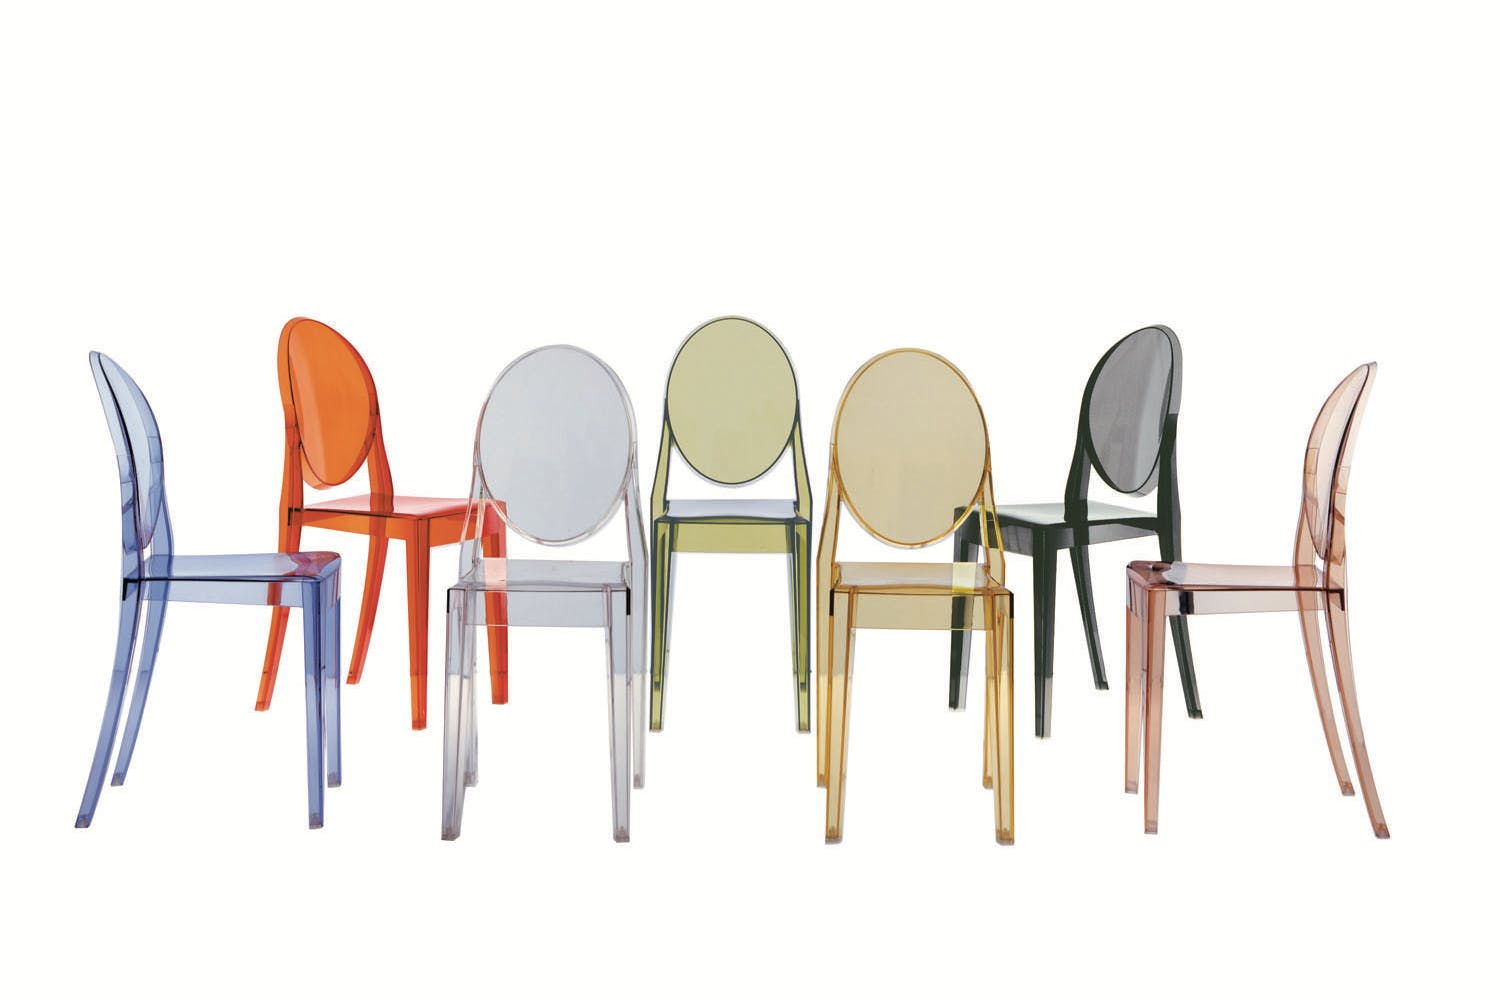 Victoria ghost chair by philippe starck for kartell for Chaise ghost starck